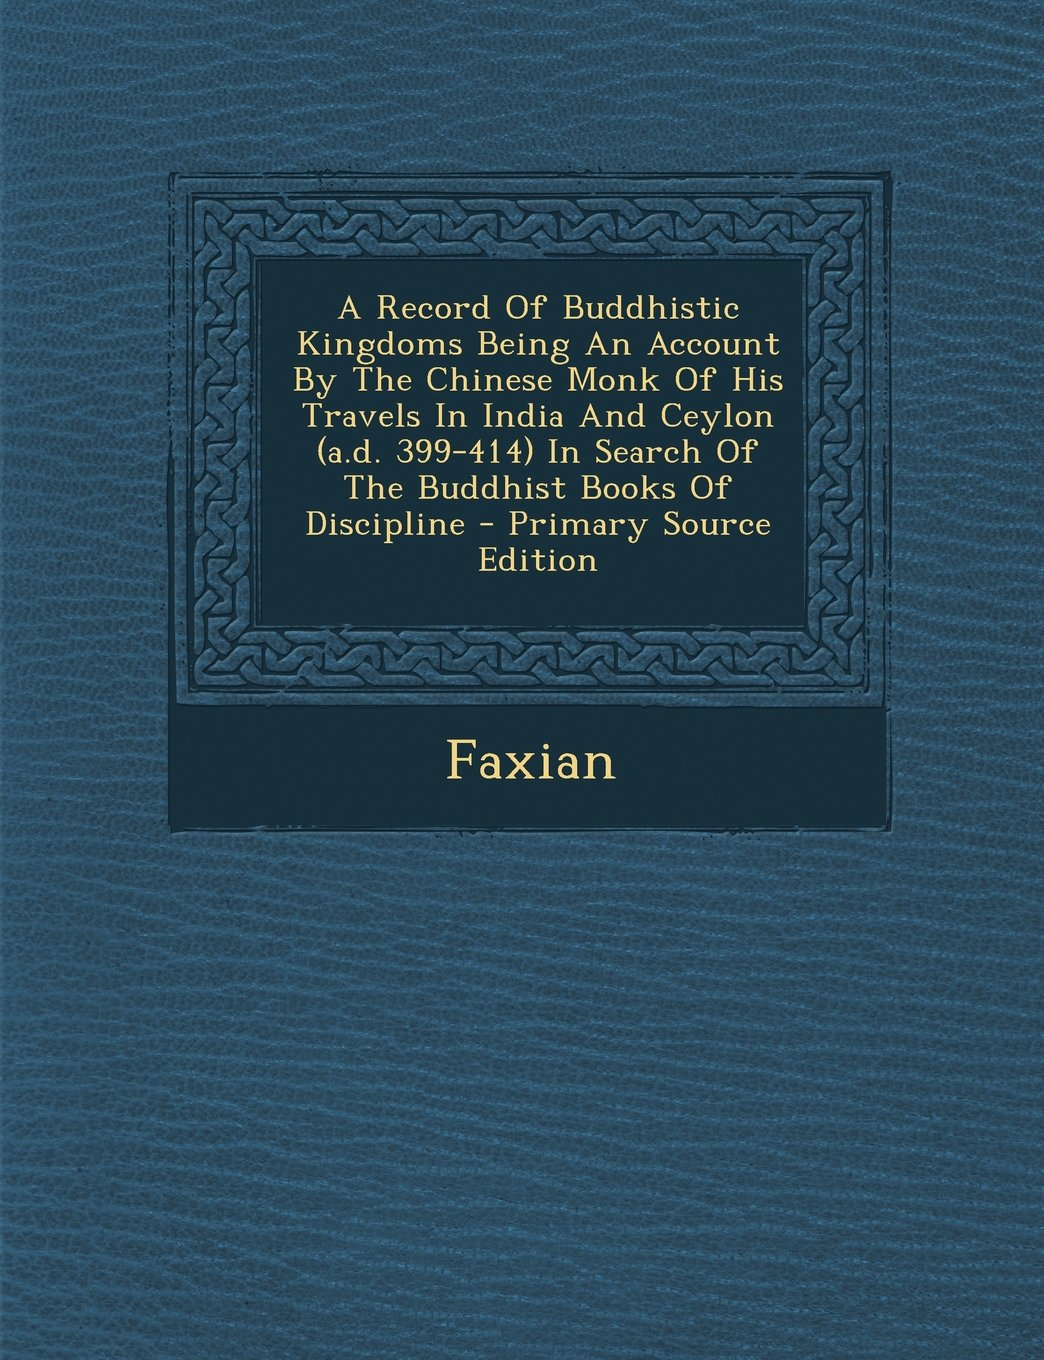 A   Record of Buddhistic Kingdoms Being an Account by the Chinese Monk of His Travels in India and Ceylon (A.D. 399-414) in Search of the Buddhist Boo Text fb2 ebook